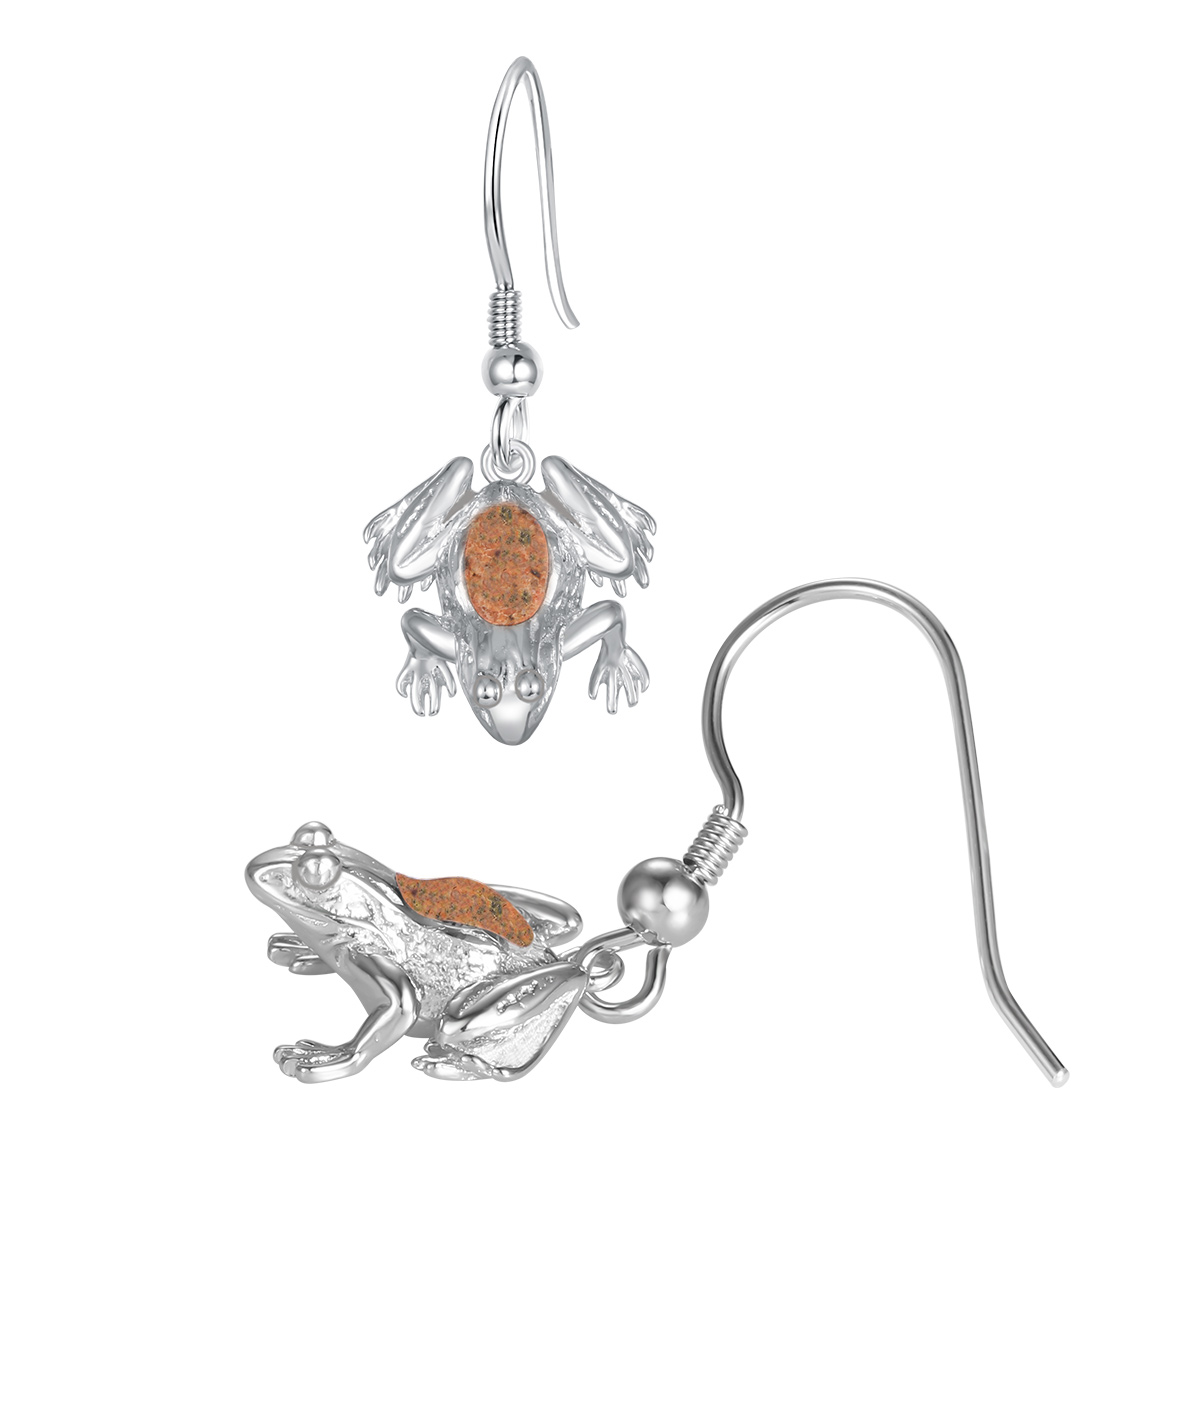 Jersey Crapaud Drop Earrings